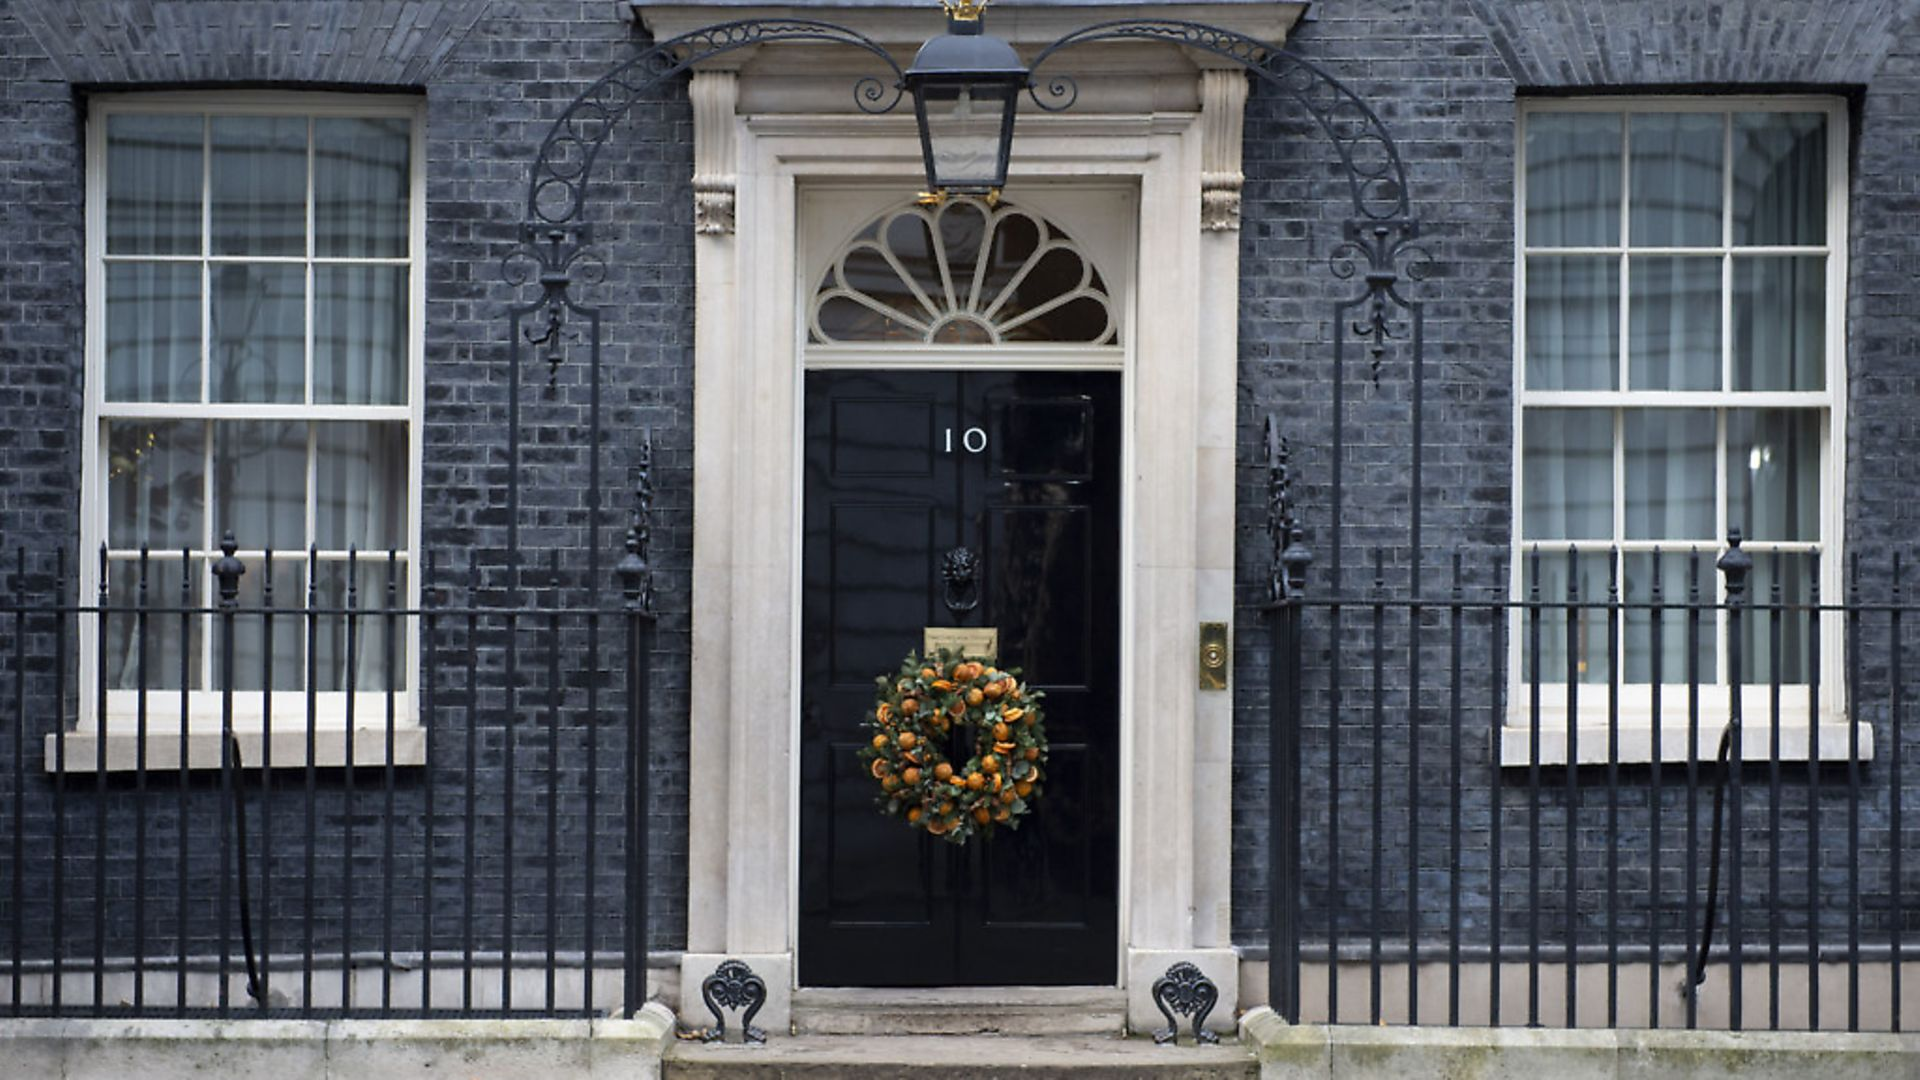 A Christmas wreath is displayed on the door of 10 Downing Street in London after the election result. Photograph: David Mirzoeff/PA Wire. - Credit: PA